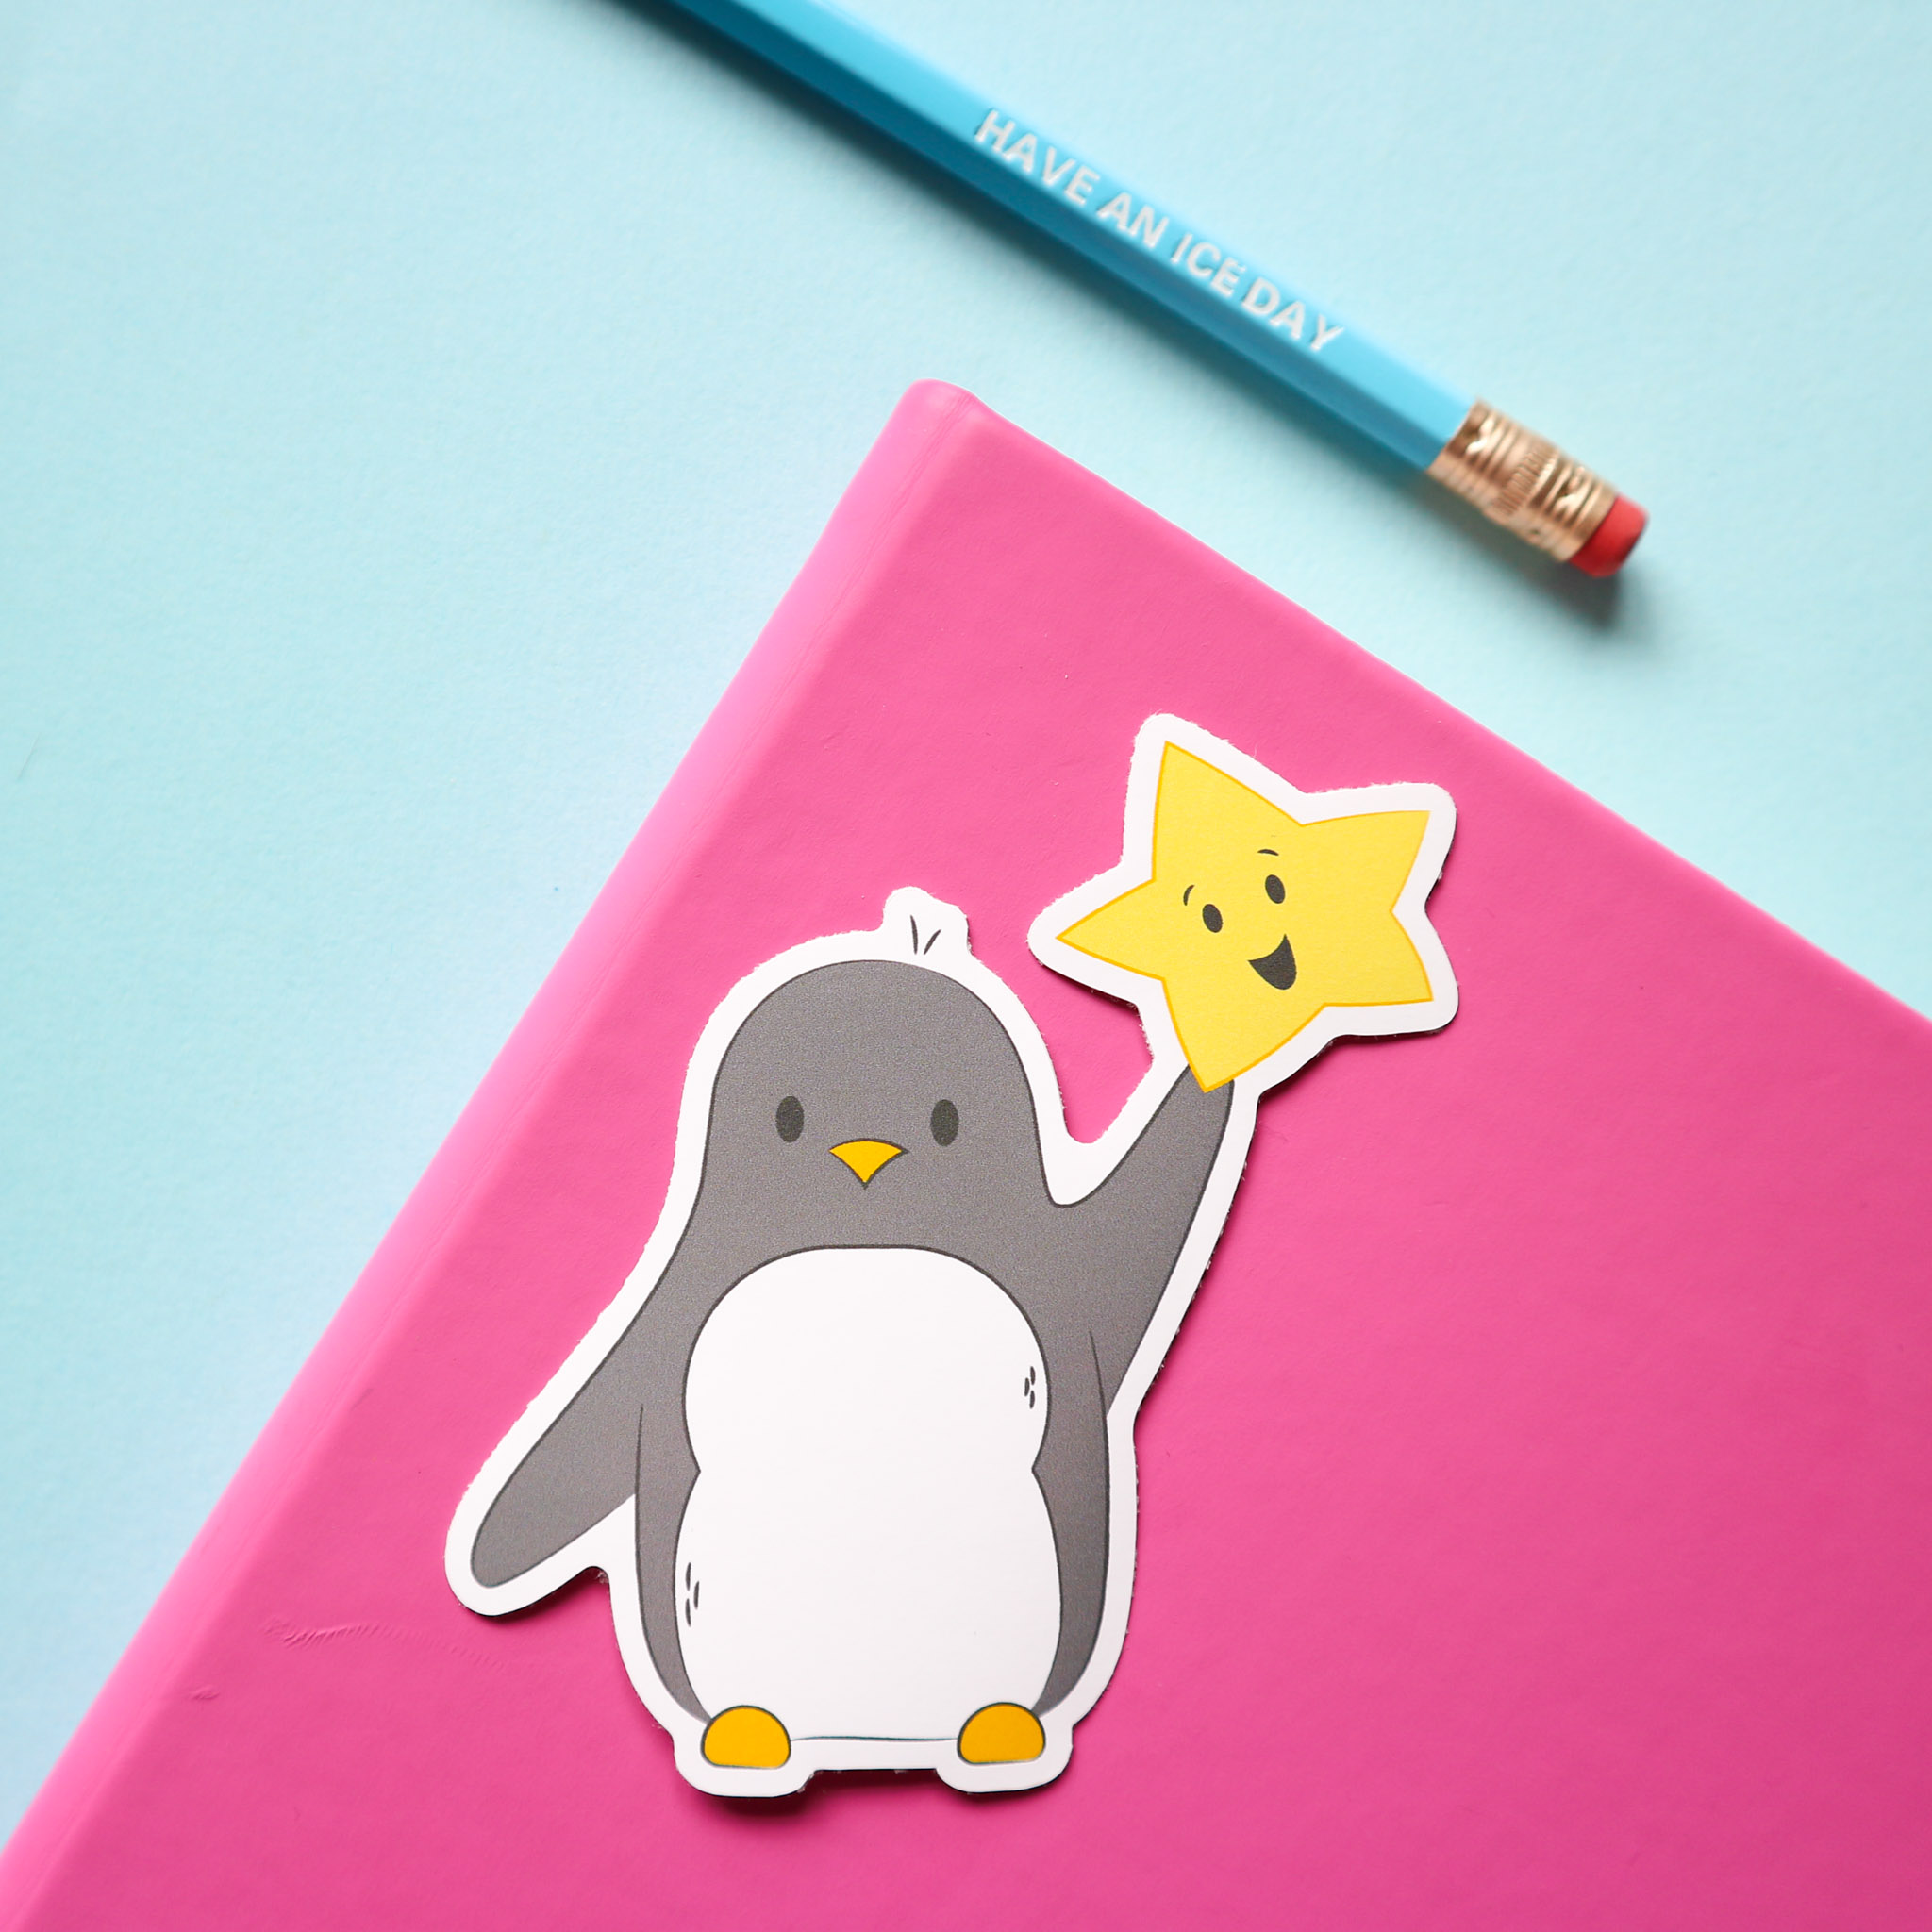 """sticker design of penguin holding a smiling star, against the background of a pink notebook, a pencil that say """"have an ice day"""" all on a pale blue background. Pencil not included in this listing."""